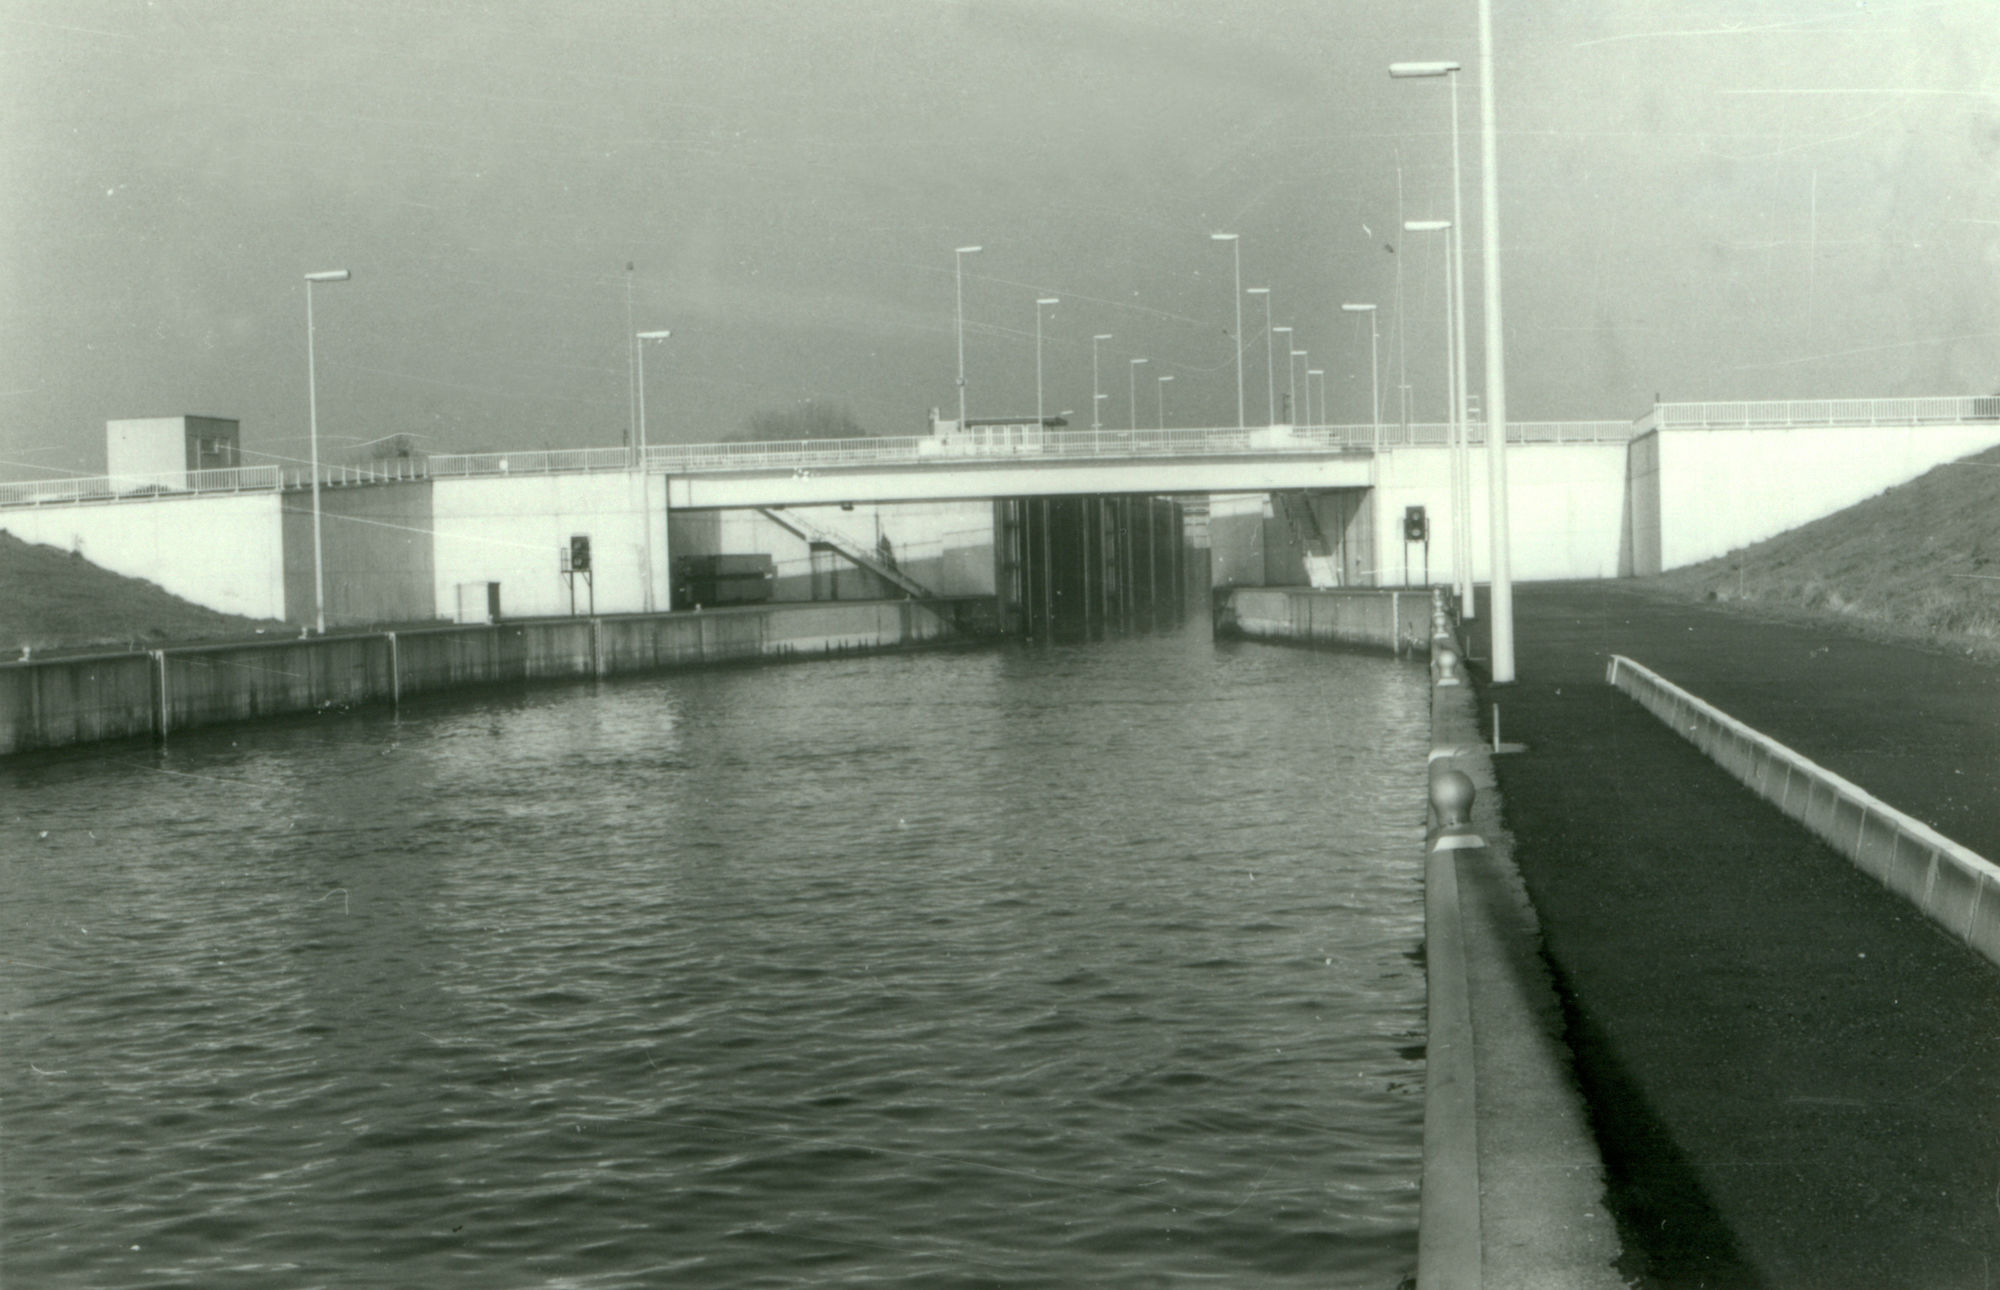 Brug over de sluis in Bossuit 1981